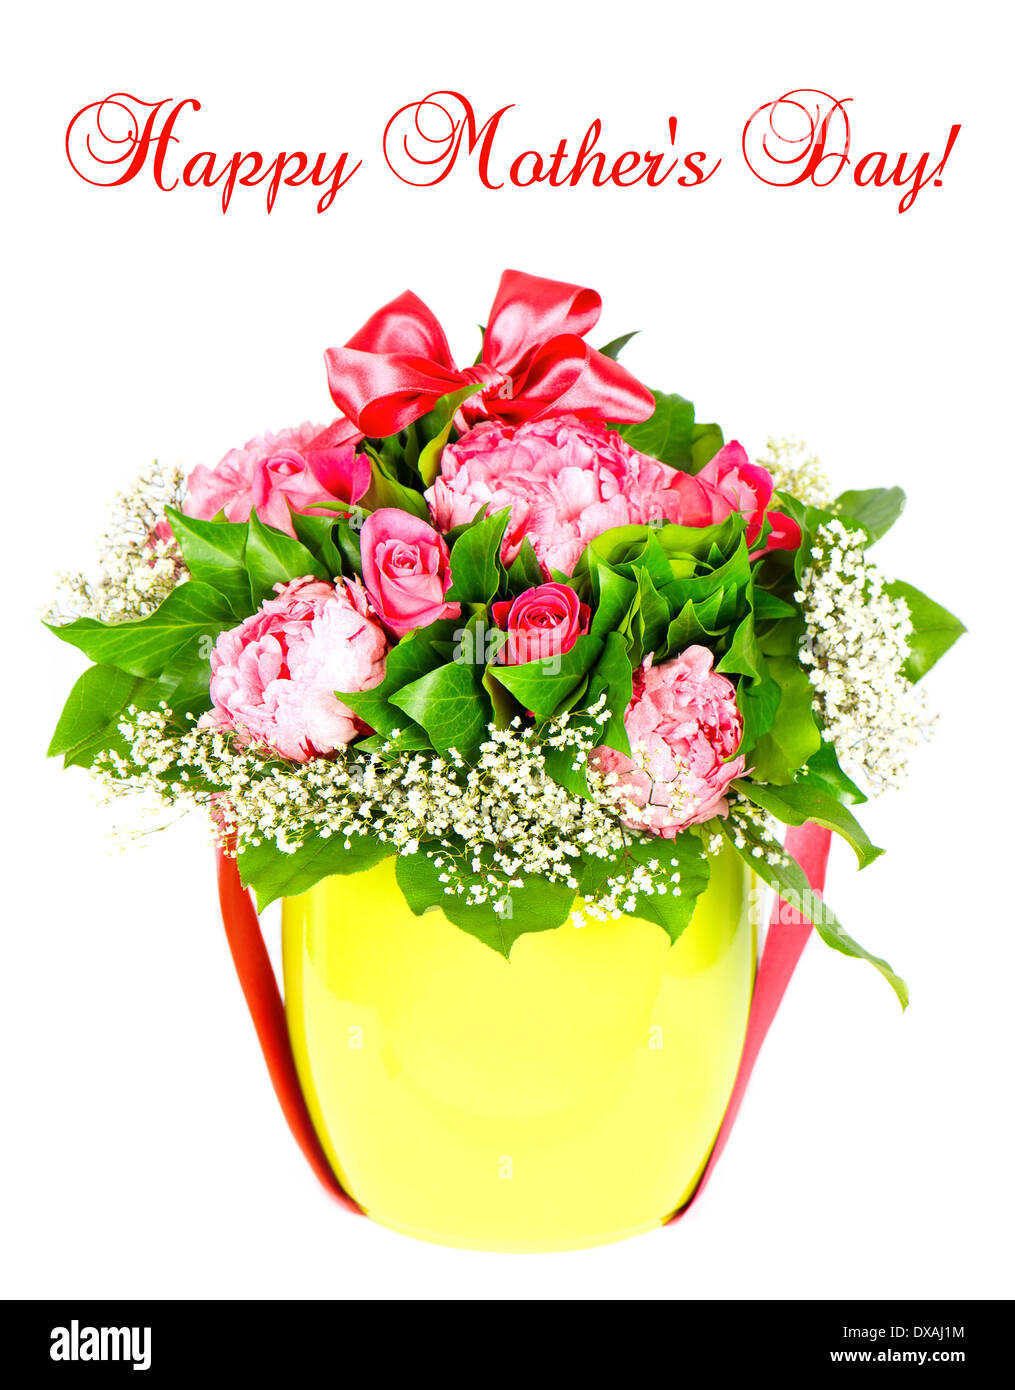 Happy Mother S Day Card Concept Colorful Roses Flower Bouquet With Stock Photo Alamy